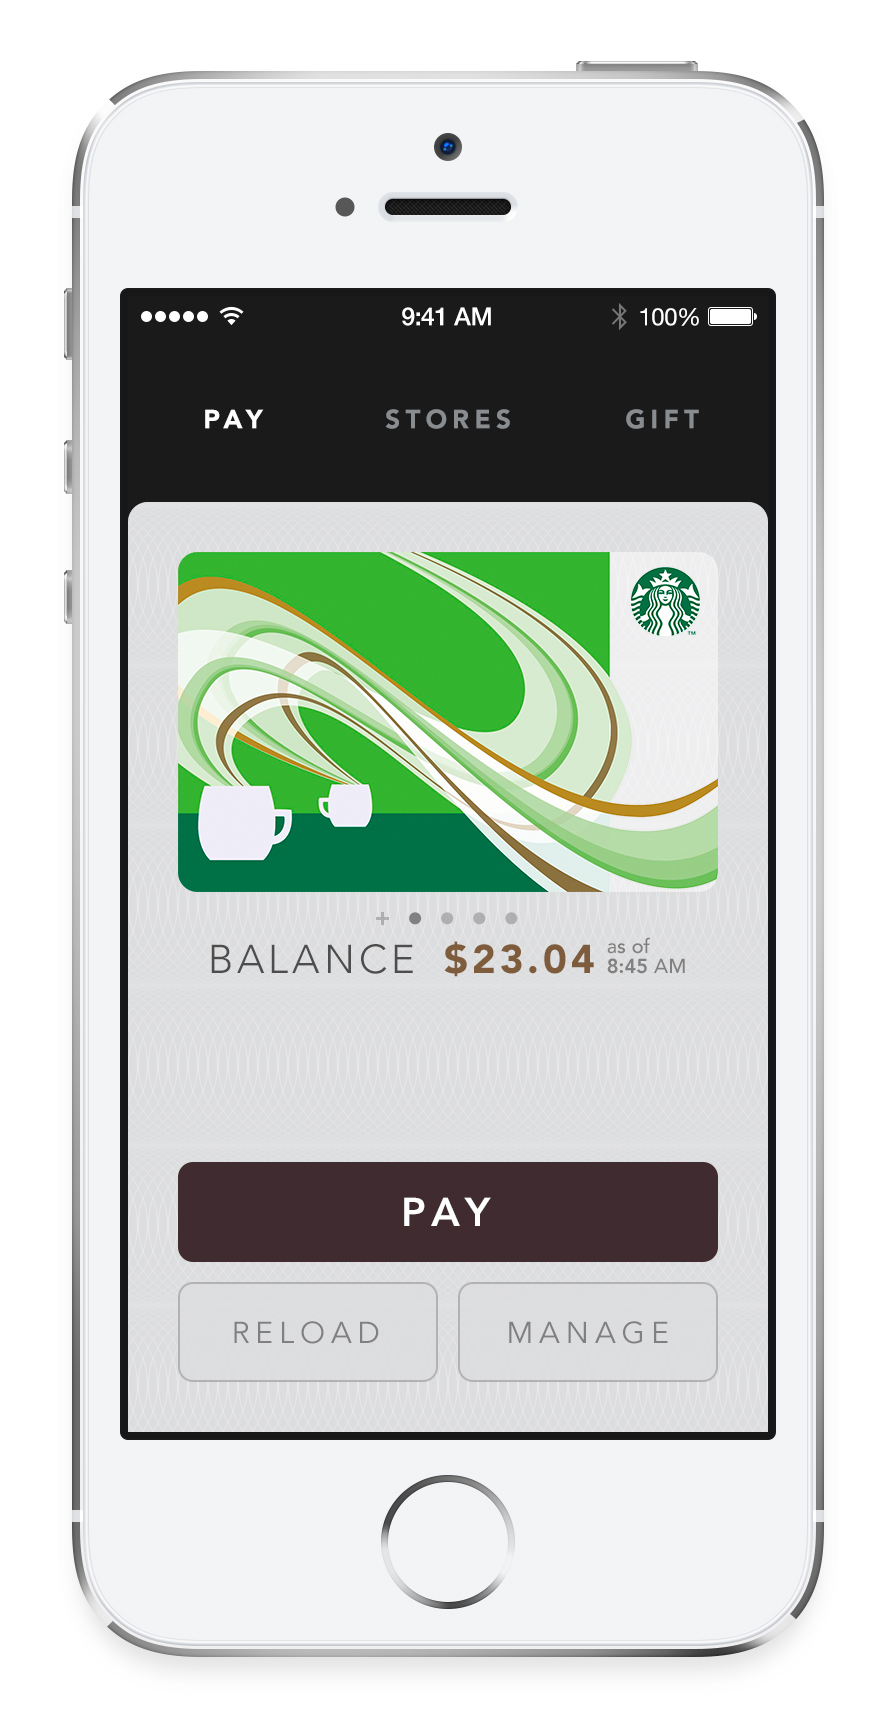 Starbucks (iPhone screenshot, Pay)